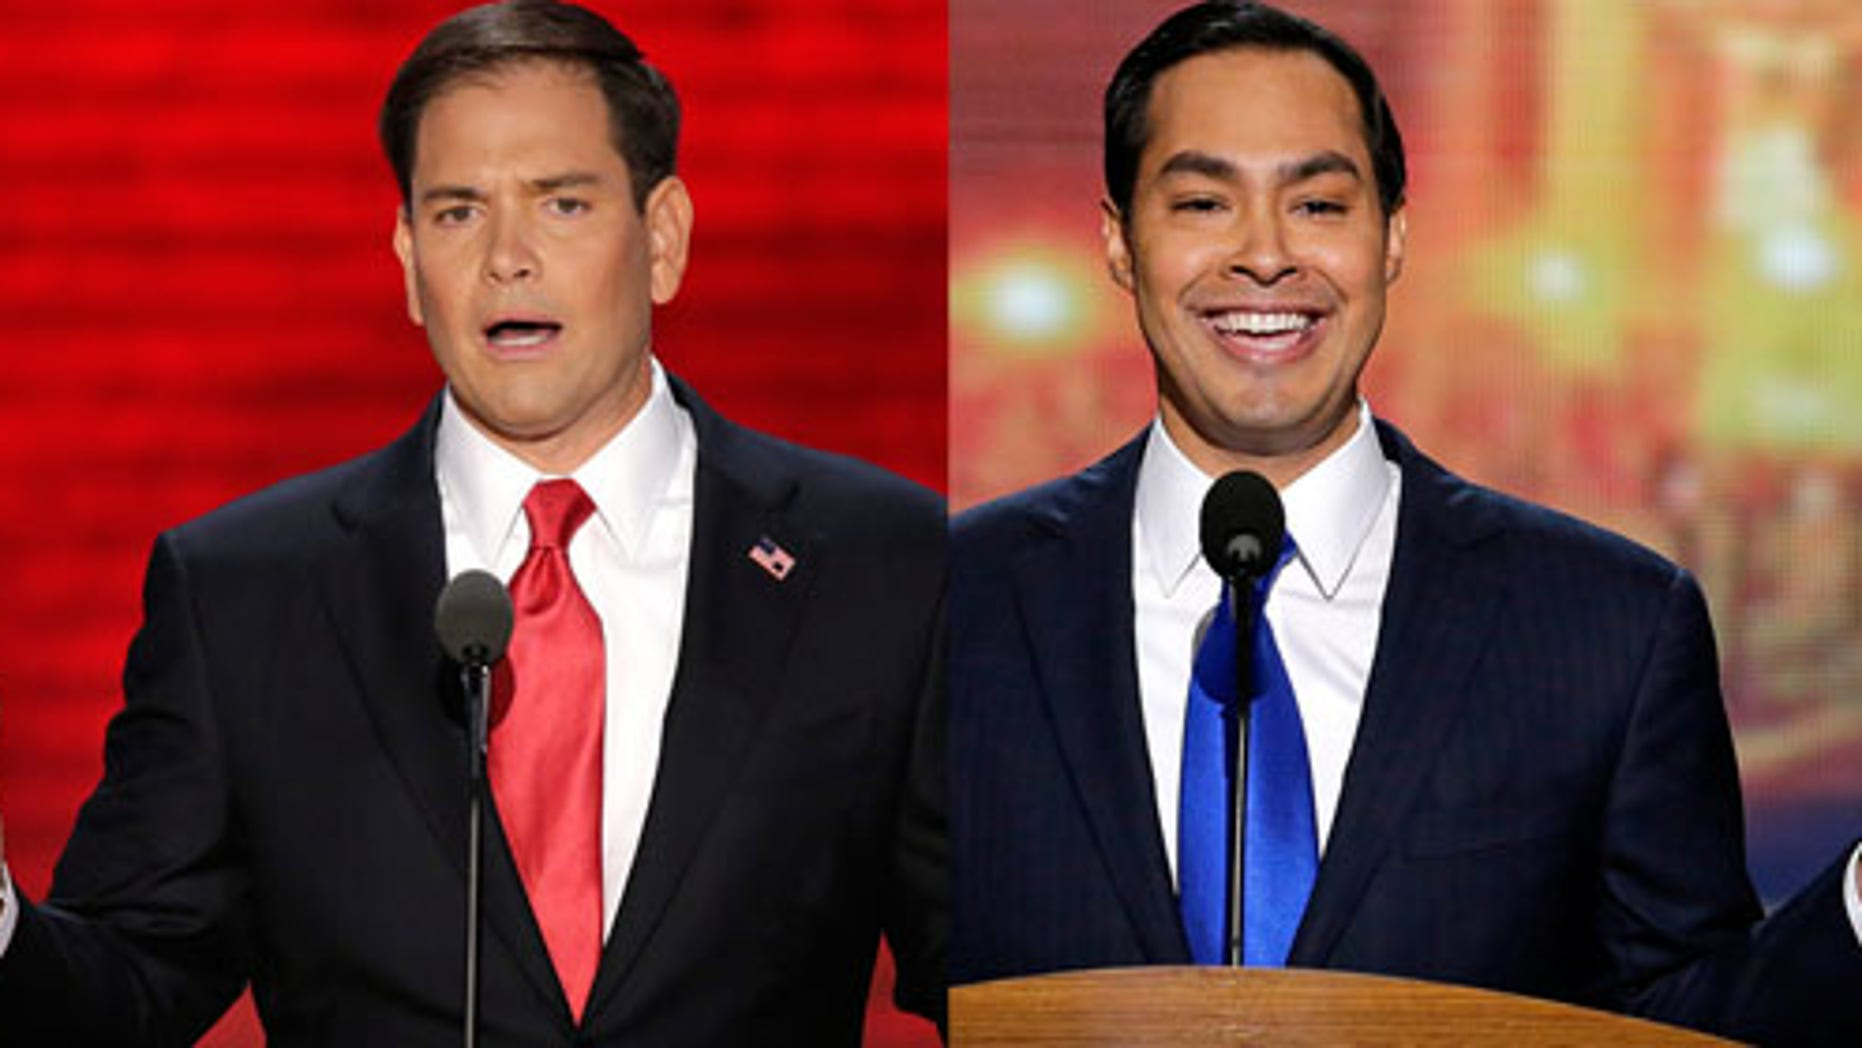 Sen. Marco Rubio (R-Fl) addresses the Republican National Convention (left) in Tampa, Fl and San Antonio Mayor Julian Castro addresses the Democratic National Convention in Charlotte, NC.